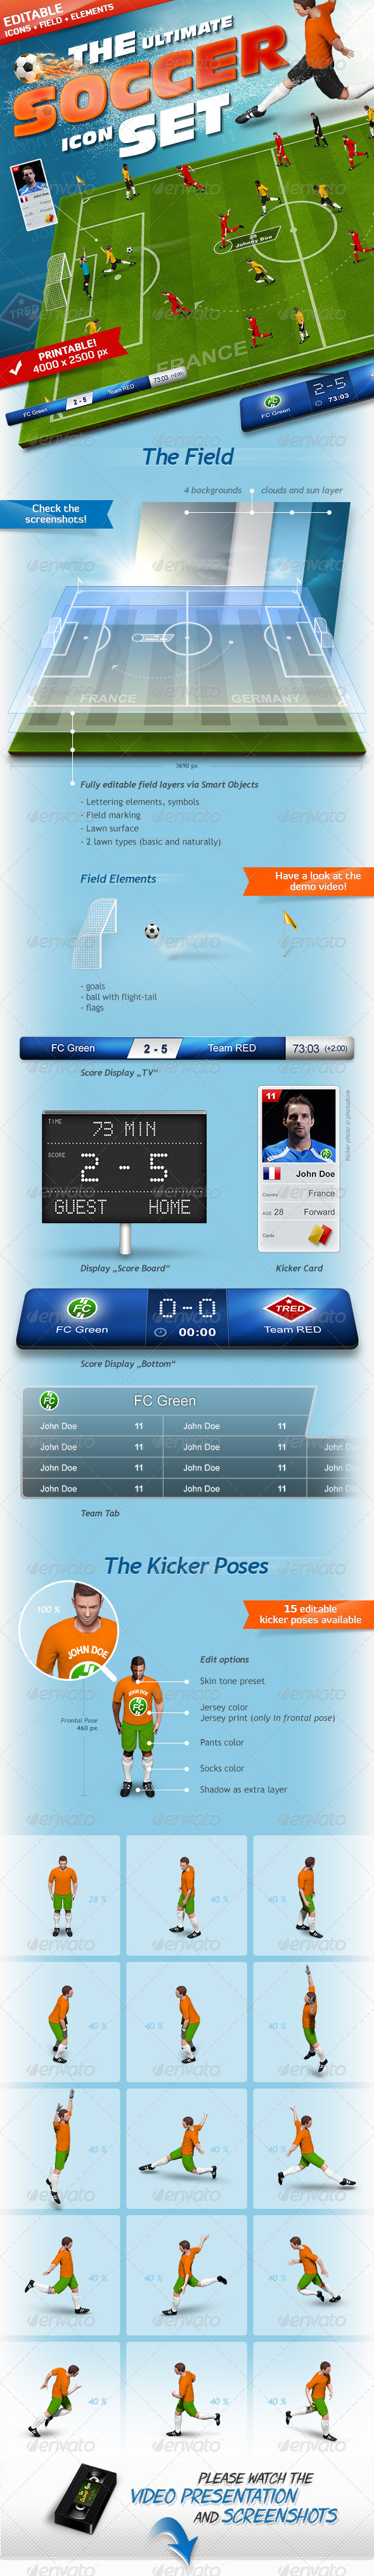 GraphicRiver The Soccer Set Kicker Icons Field and Elements 5882321